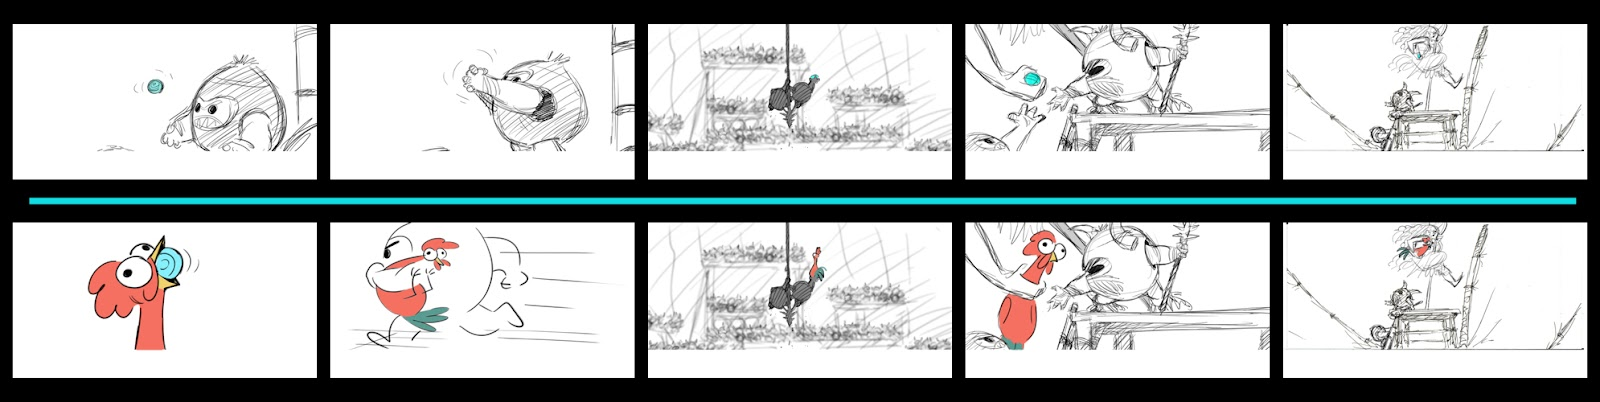 A storyboard that illustrates an action sequence from the film Moana, in which the Kakamora are trying to steal the Heart of Te Fiti.